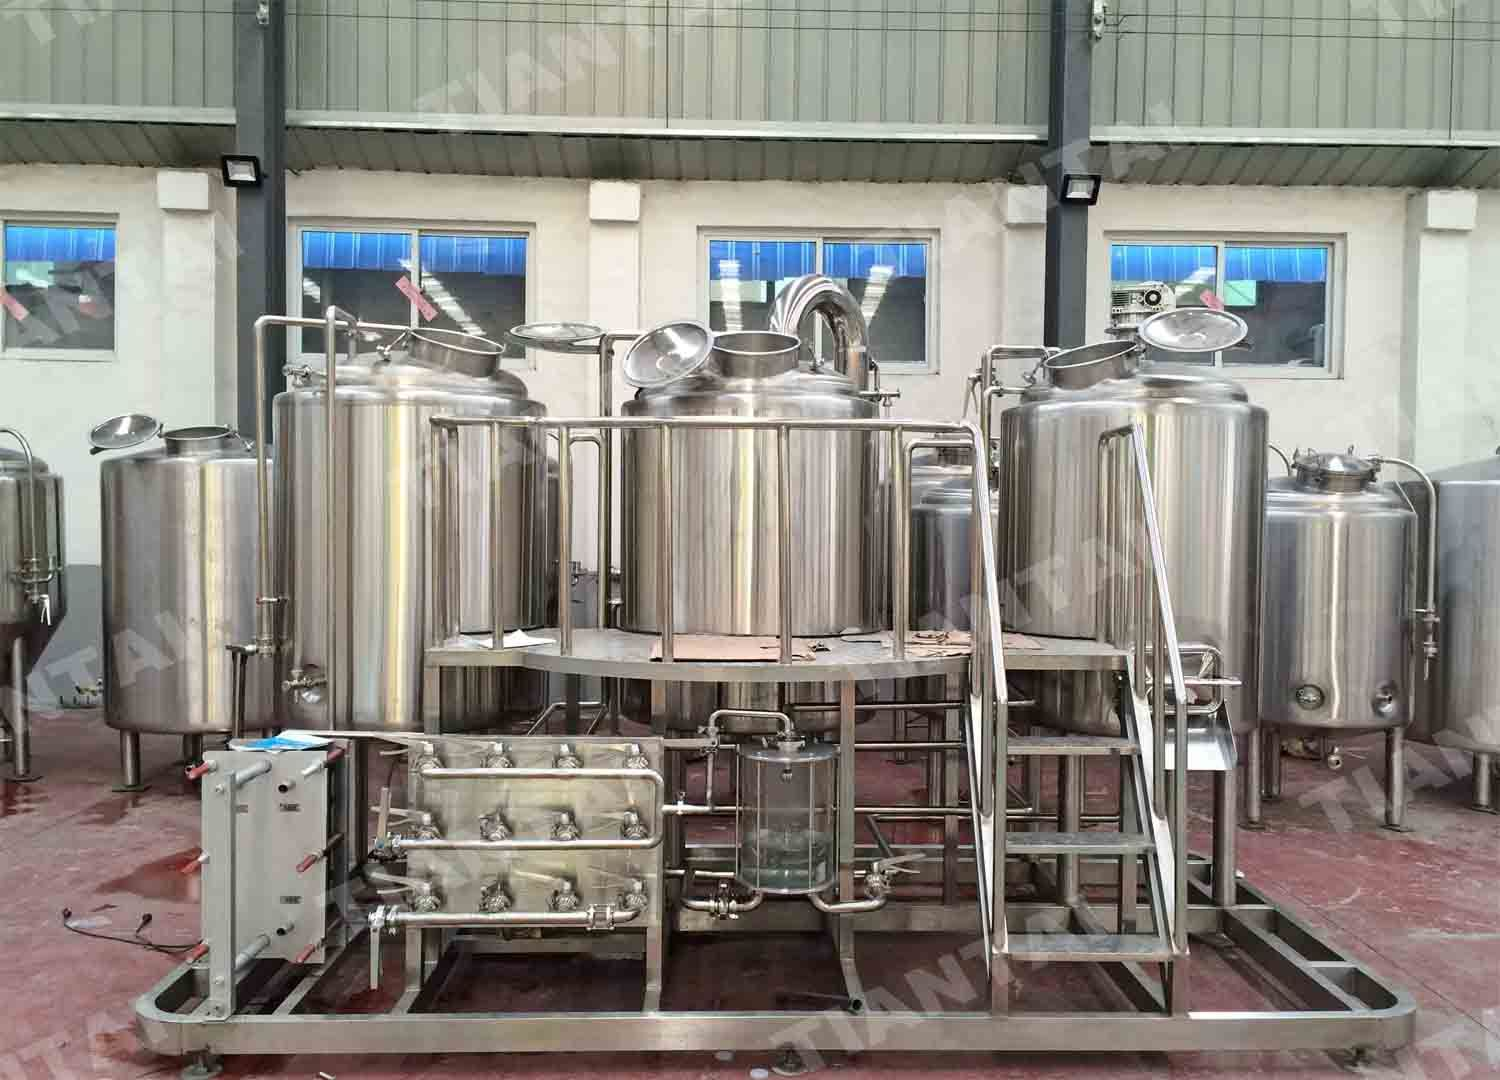 600l Beer Brewing System Beer Brewing System Beer Equipment Beer Brewing